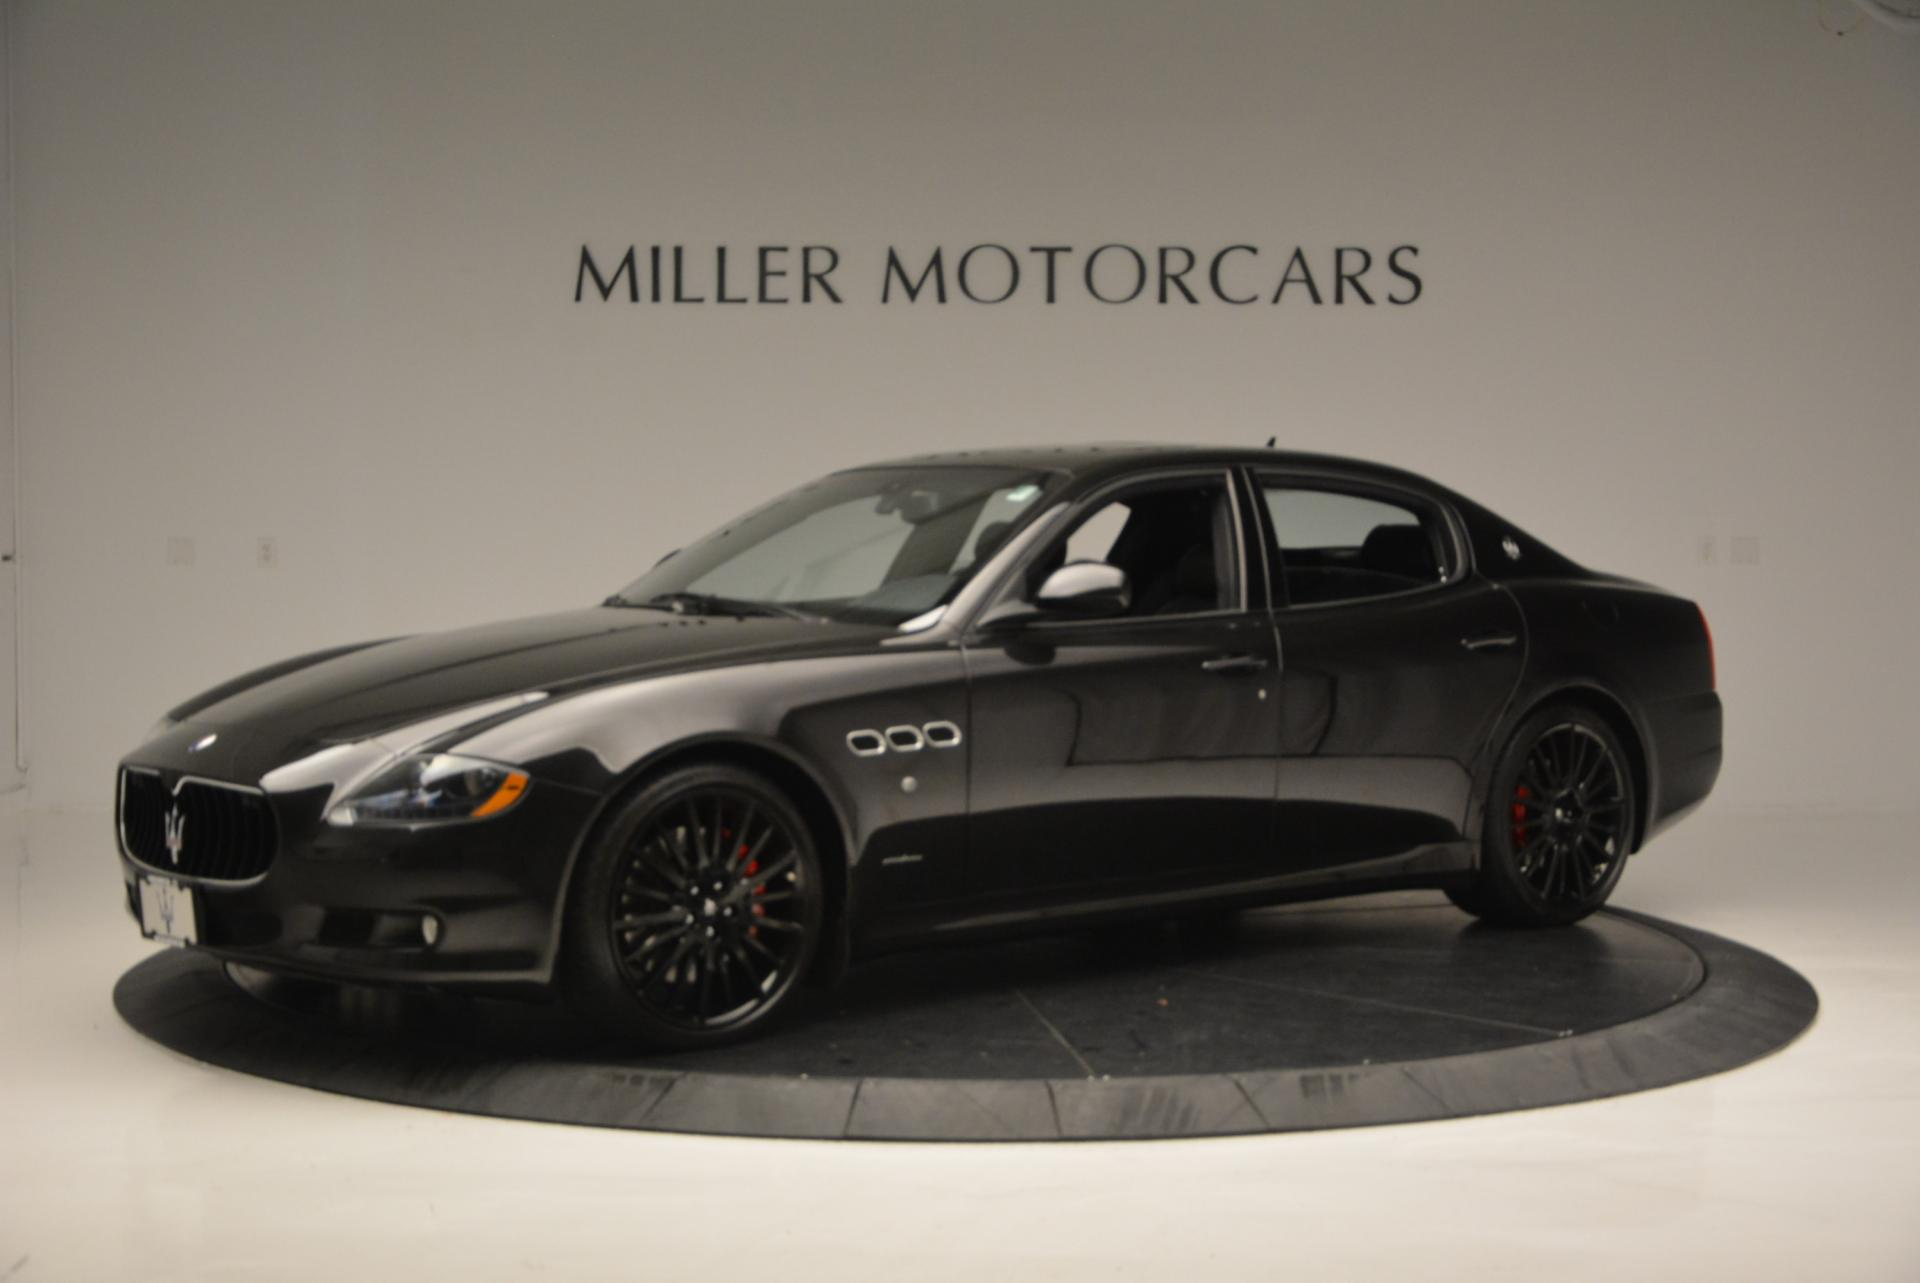 Used 2011 Maserati Quattroporte Sport GT S For Sale In Westport, CT 531_p2